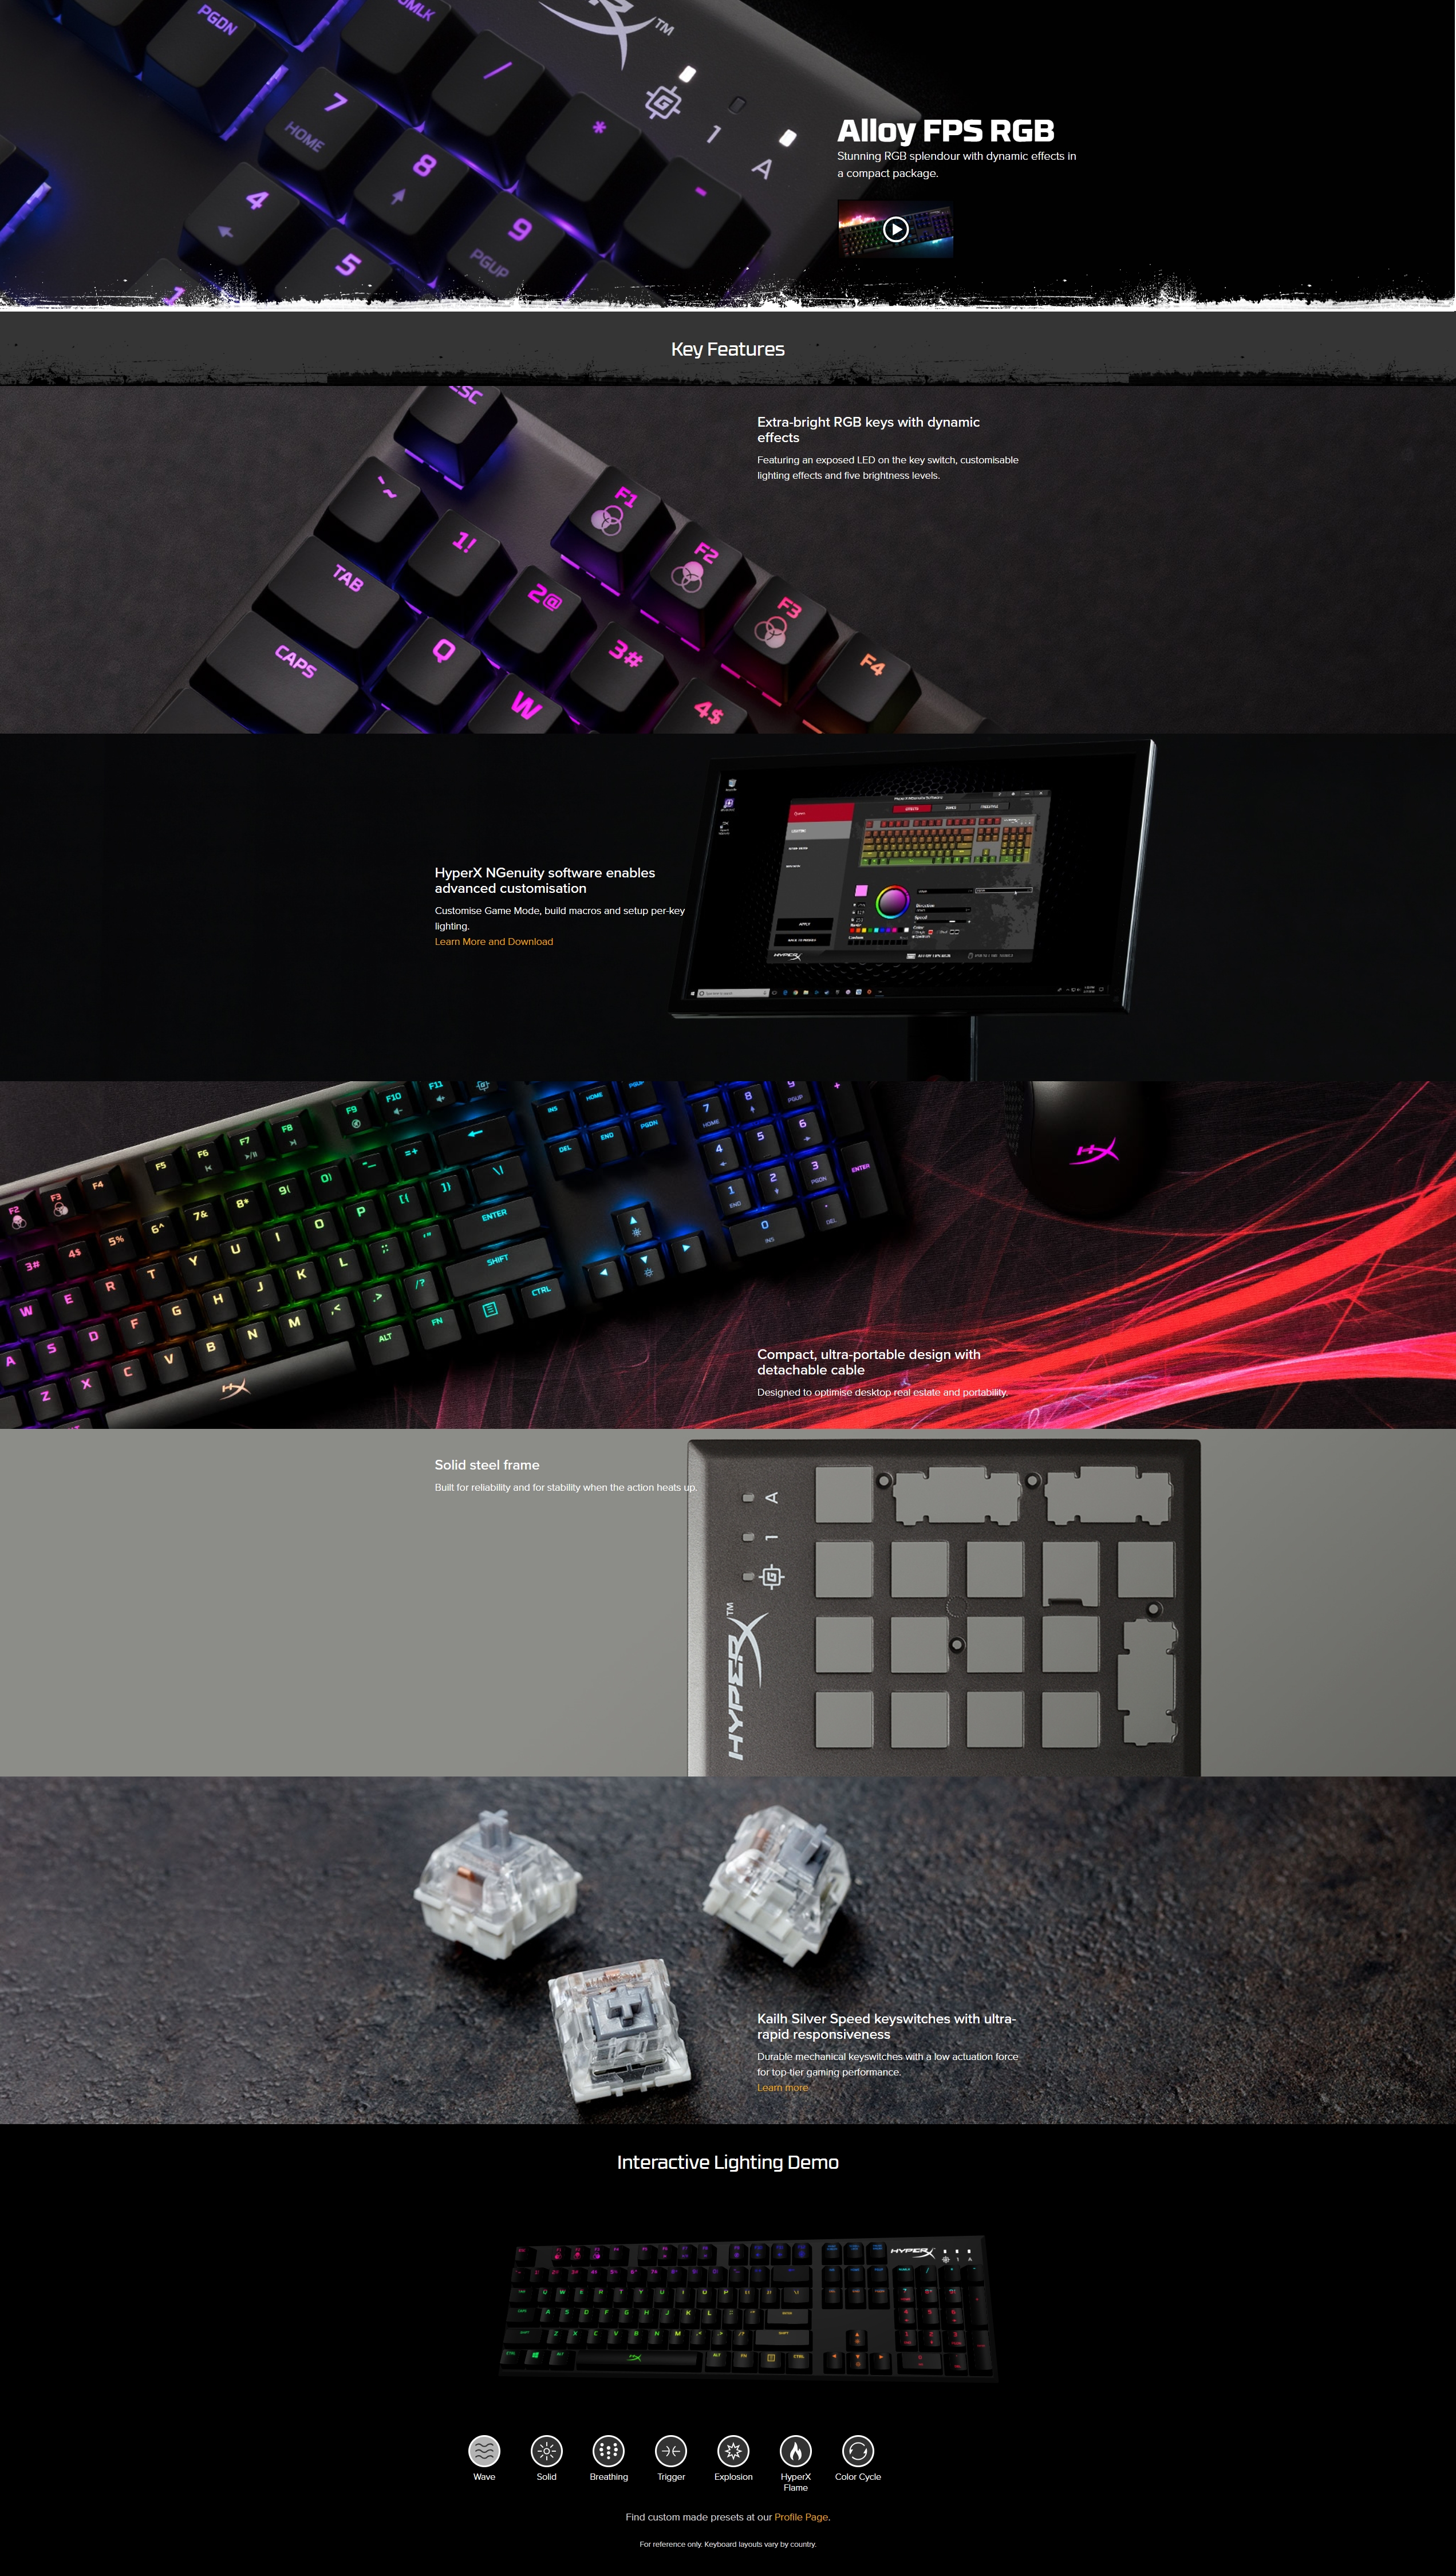 A large marketing image providing additional information about the product Kingston HyperX Alloy FPS RGB Mechanical Gaming Keyboard (Kailh Speed Switch)  - Additional alt info not provided